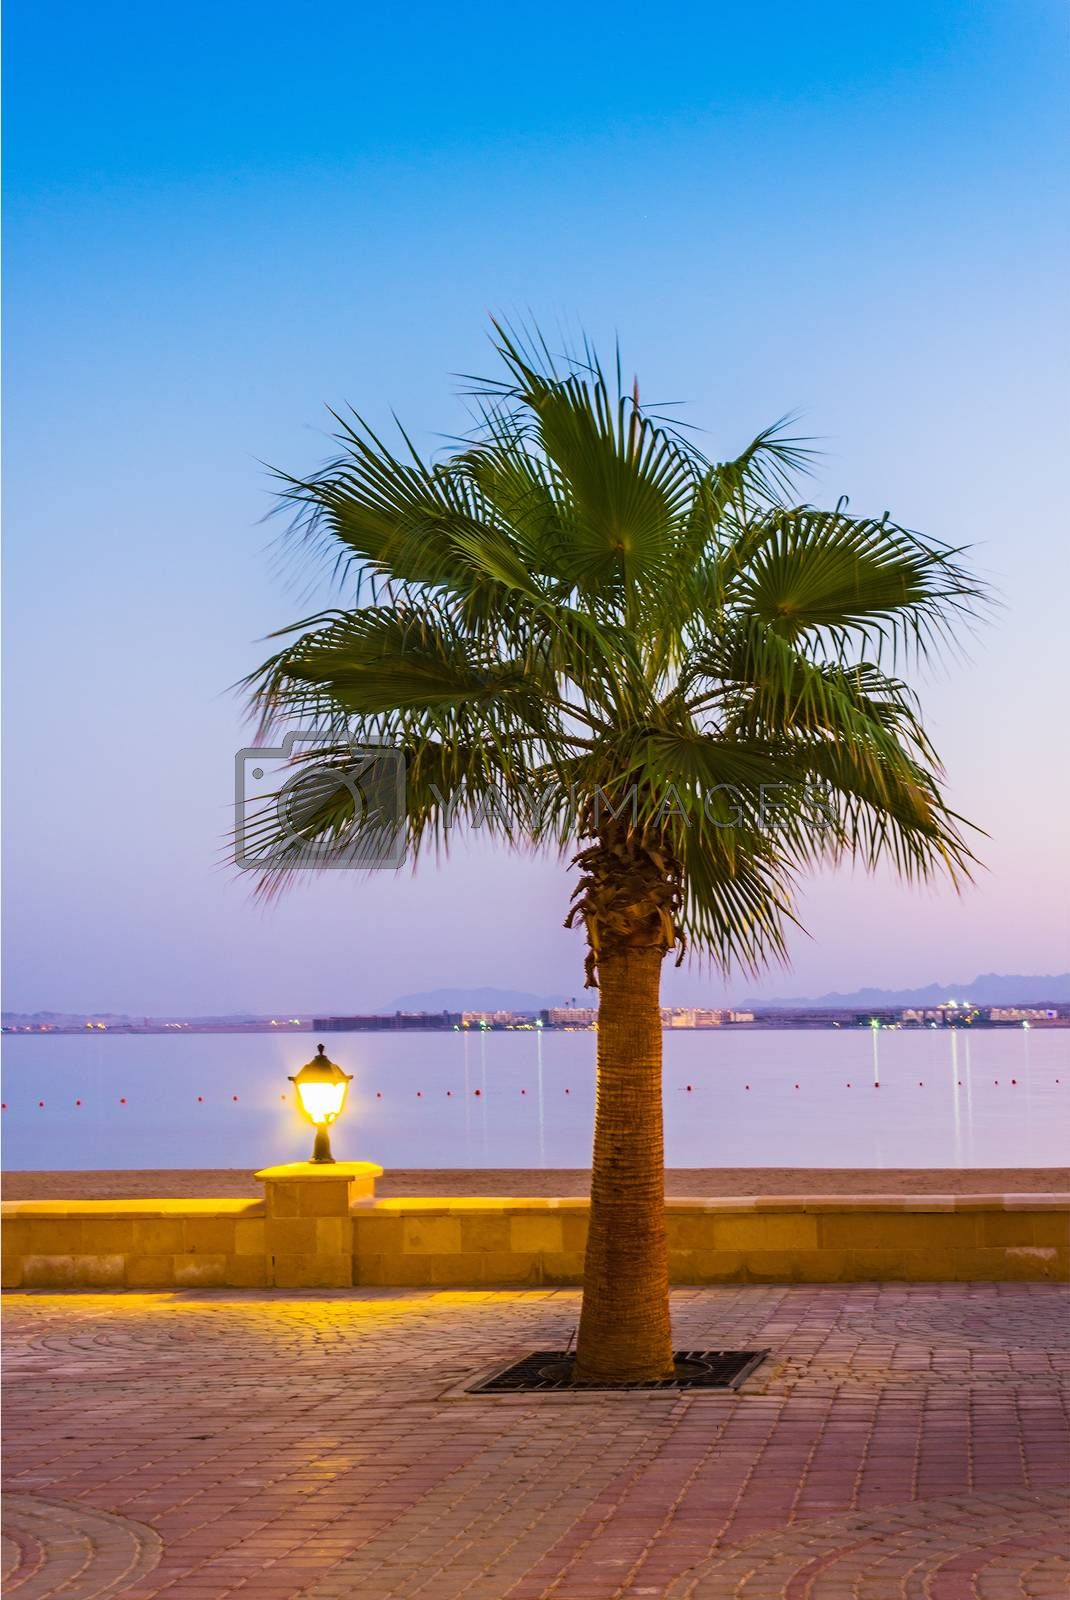 Royalty free image of Promenade with palm trees on the shore of the Red Sea by oleg_zhukov